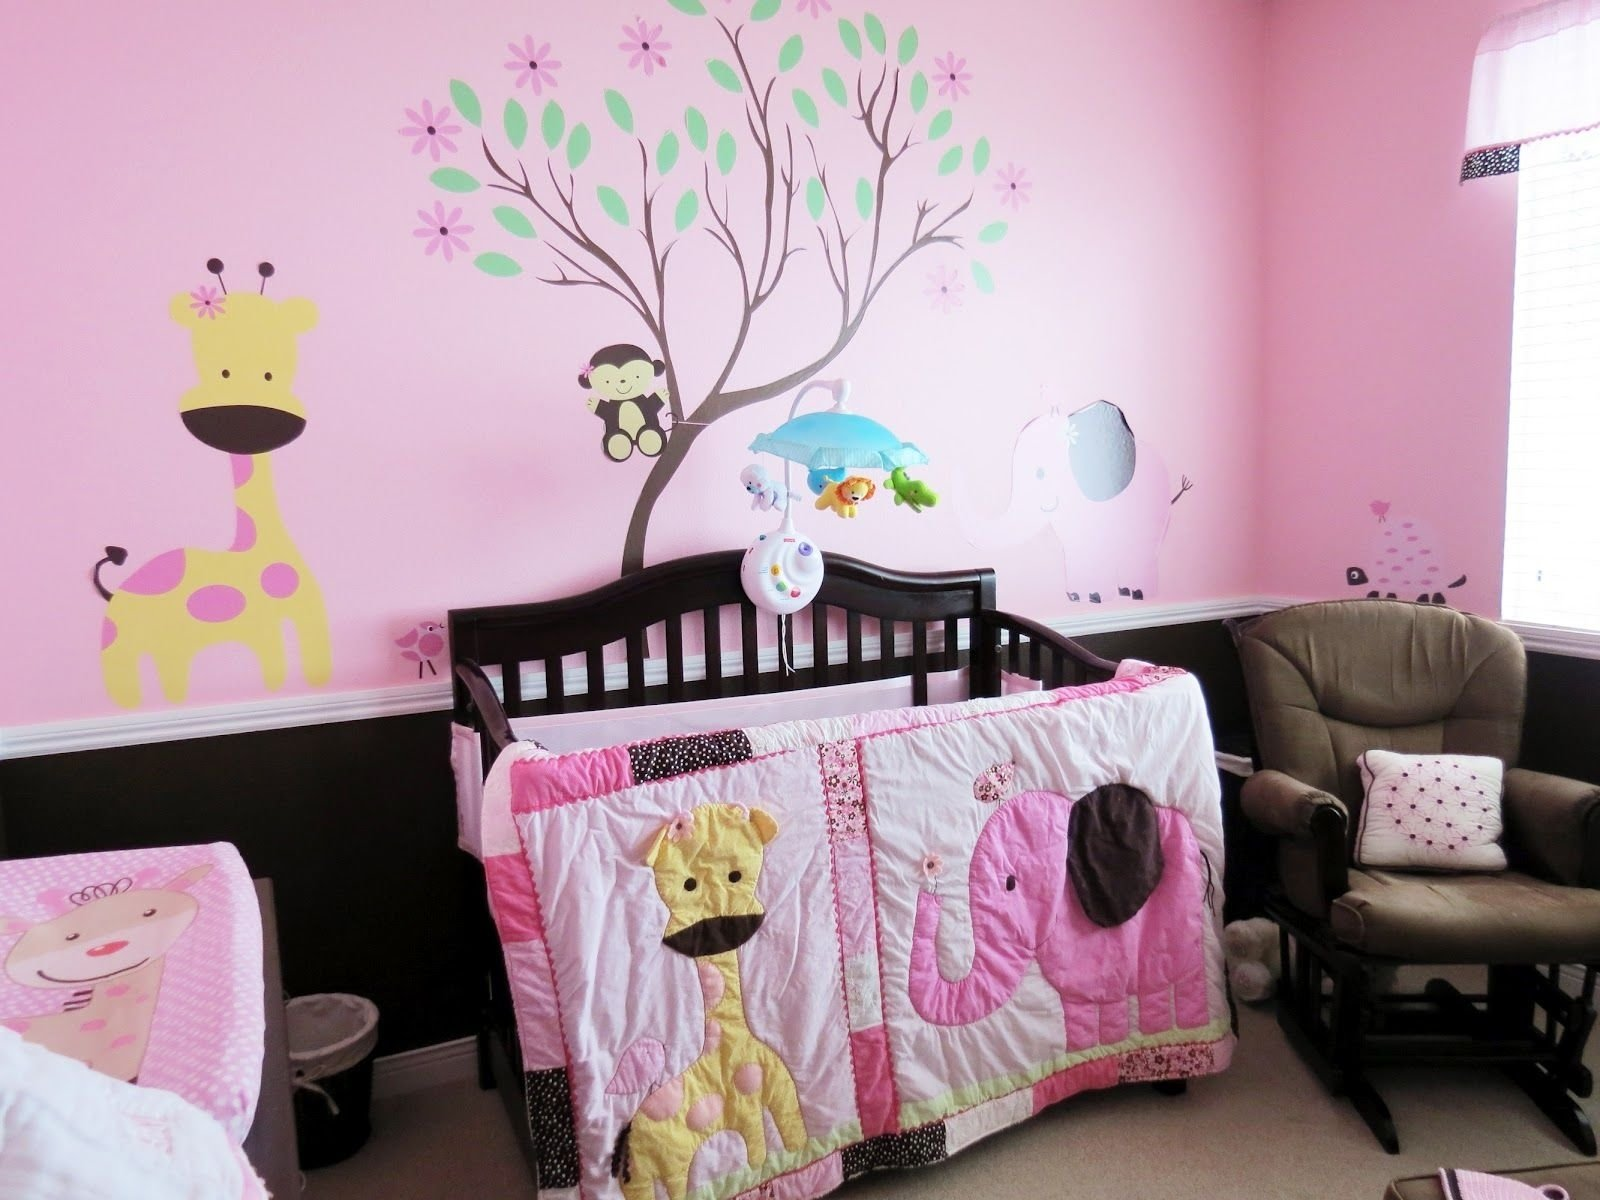 10 Perfect Little Girls Room Decor Ideas some about little girl bedroom ideas home inspirations image of